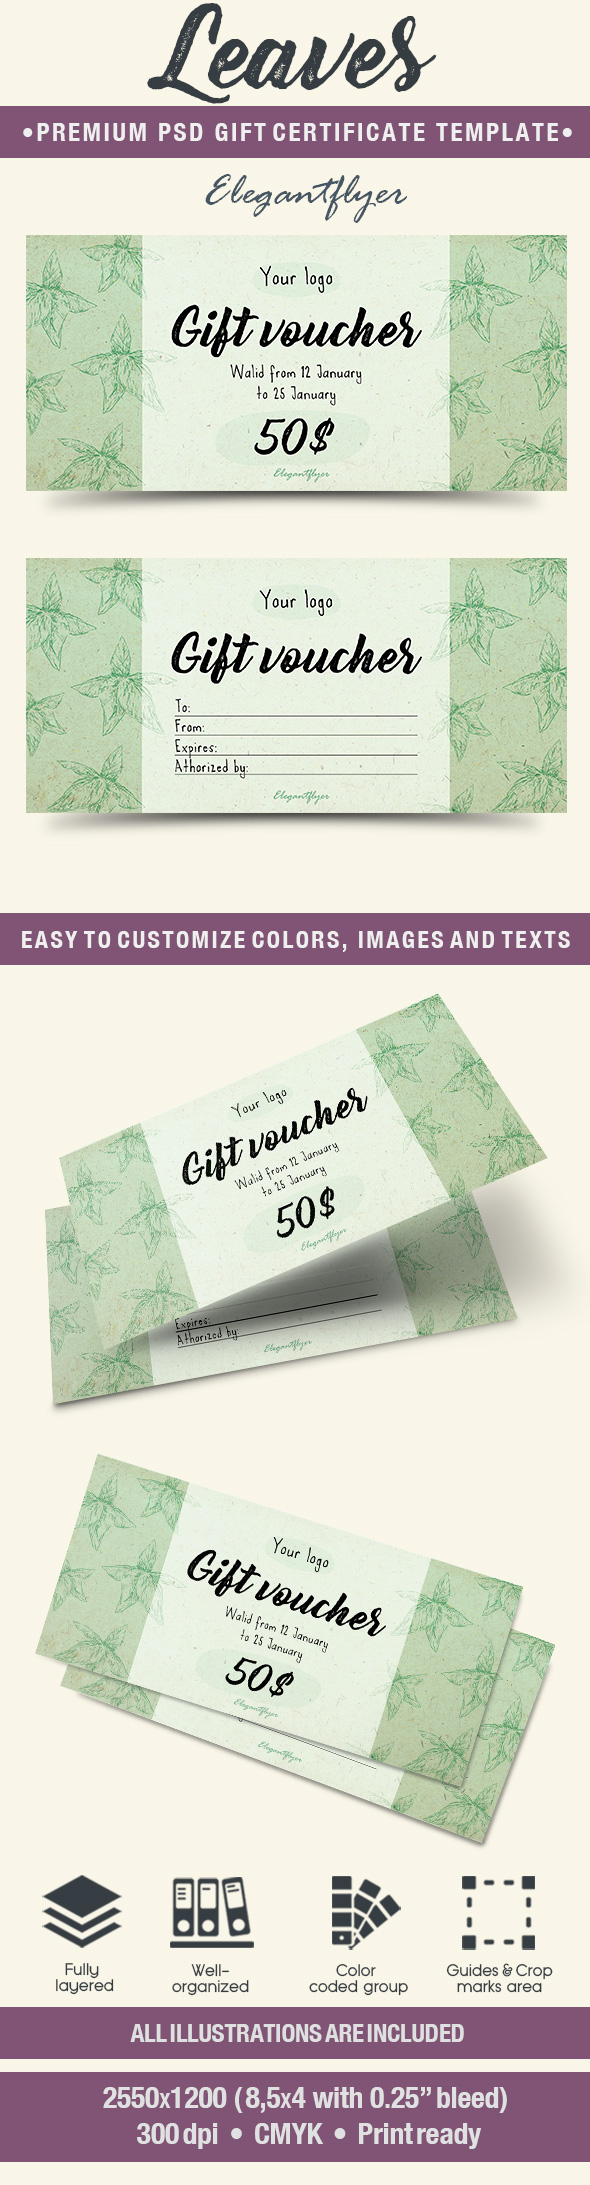 Leaves – Premium Gift Certificate PSD Template